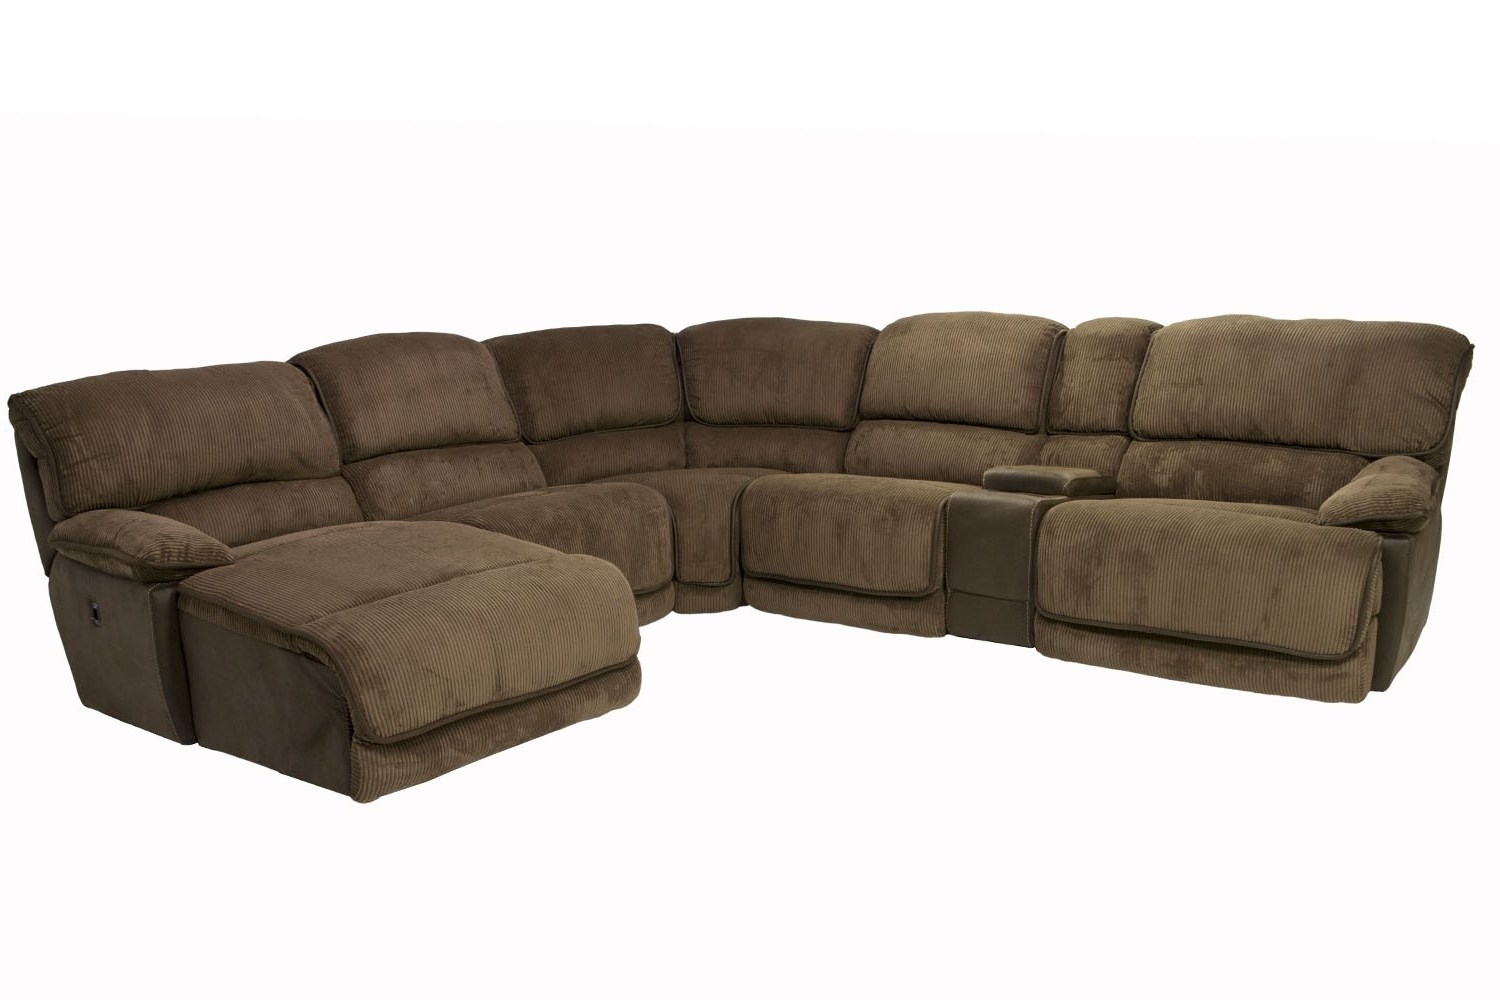 Popular Right Facing Chaise Sectionals Throughout Austin Chocolate 6 Piece Right Facing Chaise Sectional (View 15 of 15)